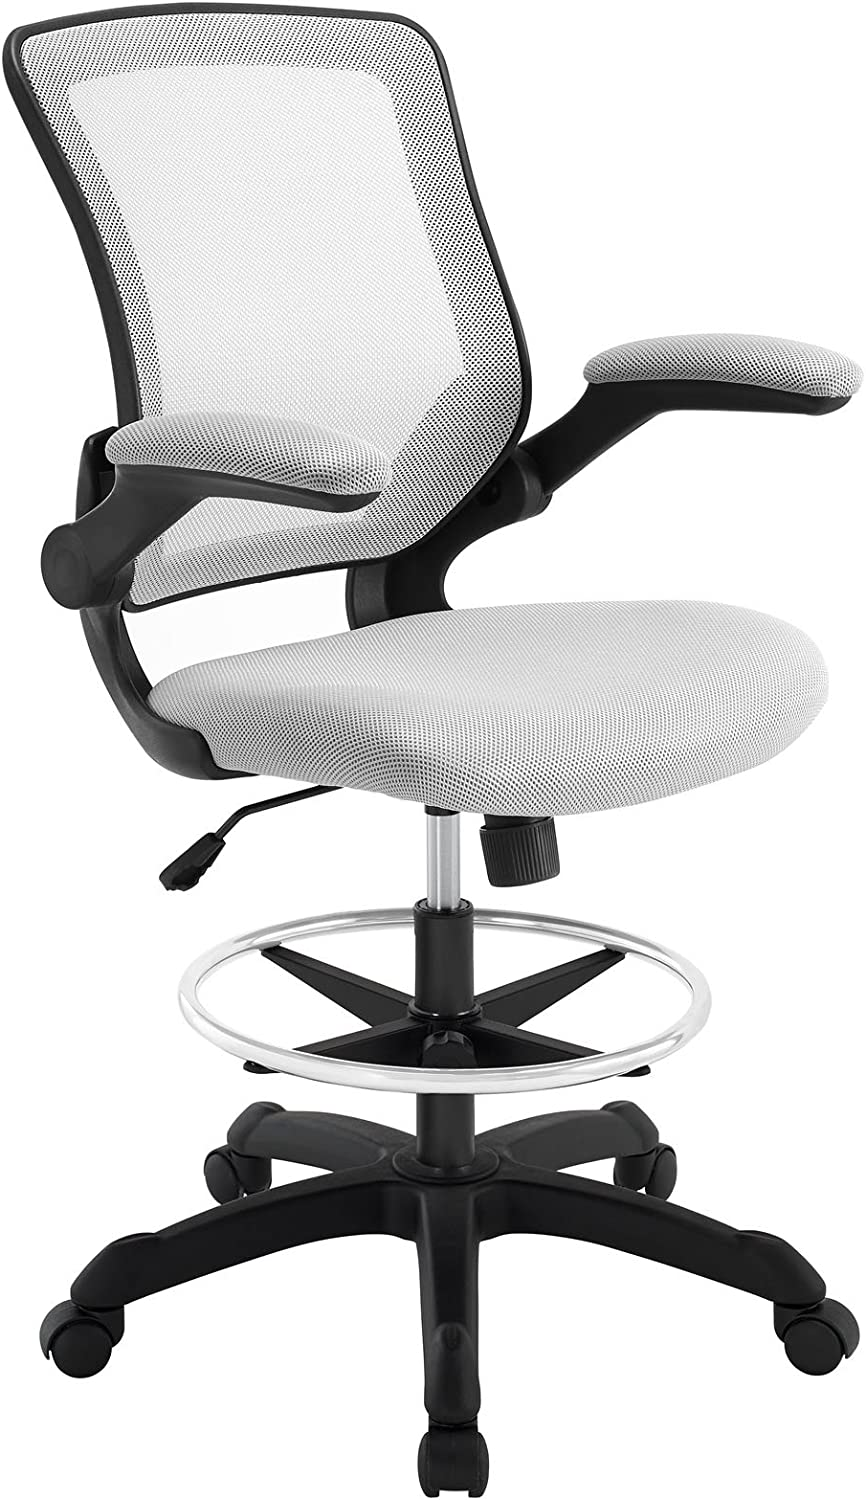 Modway Veer Drafting Stool Chair – A premium chair that doubles as a stool